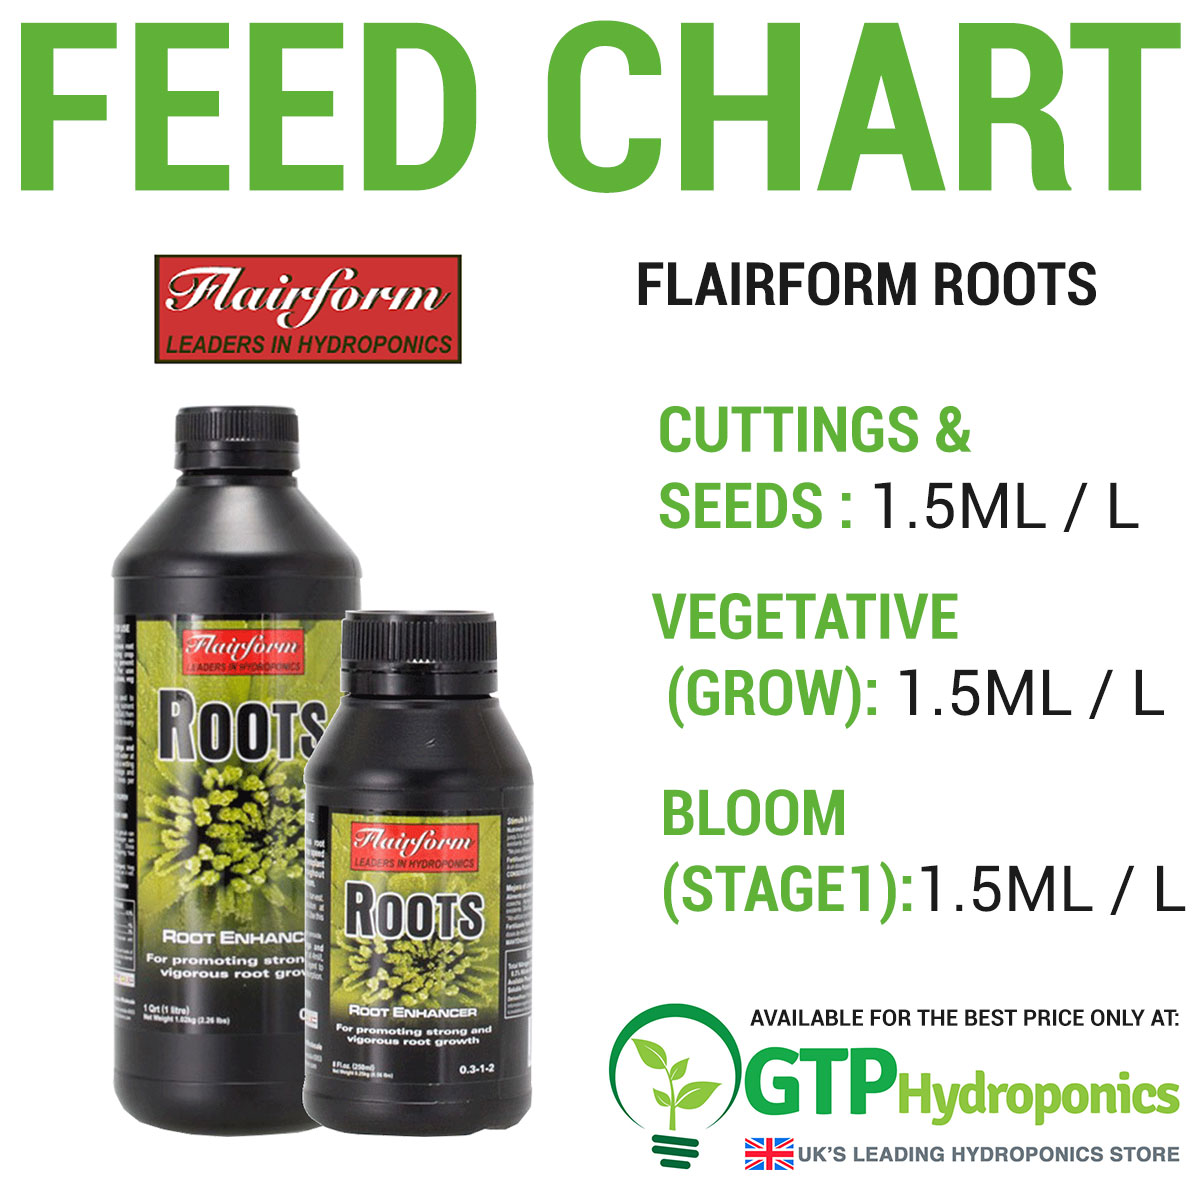 Flairform Roots overview